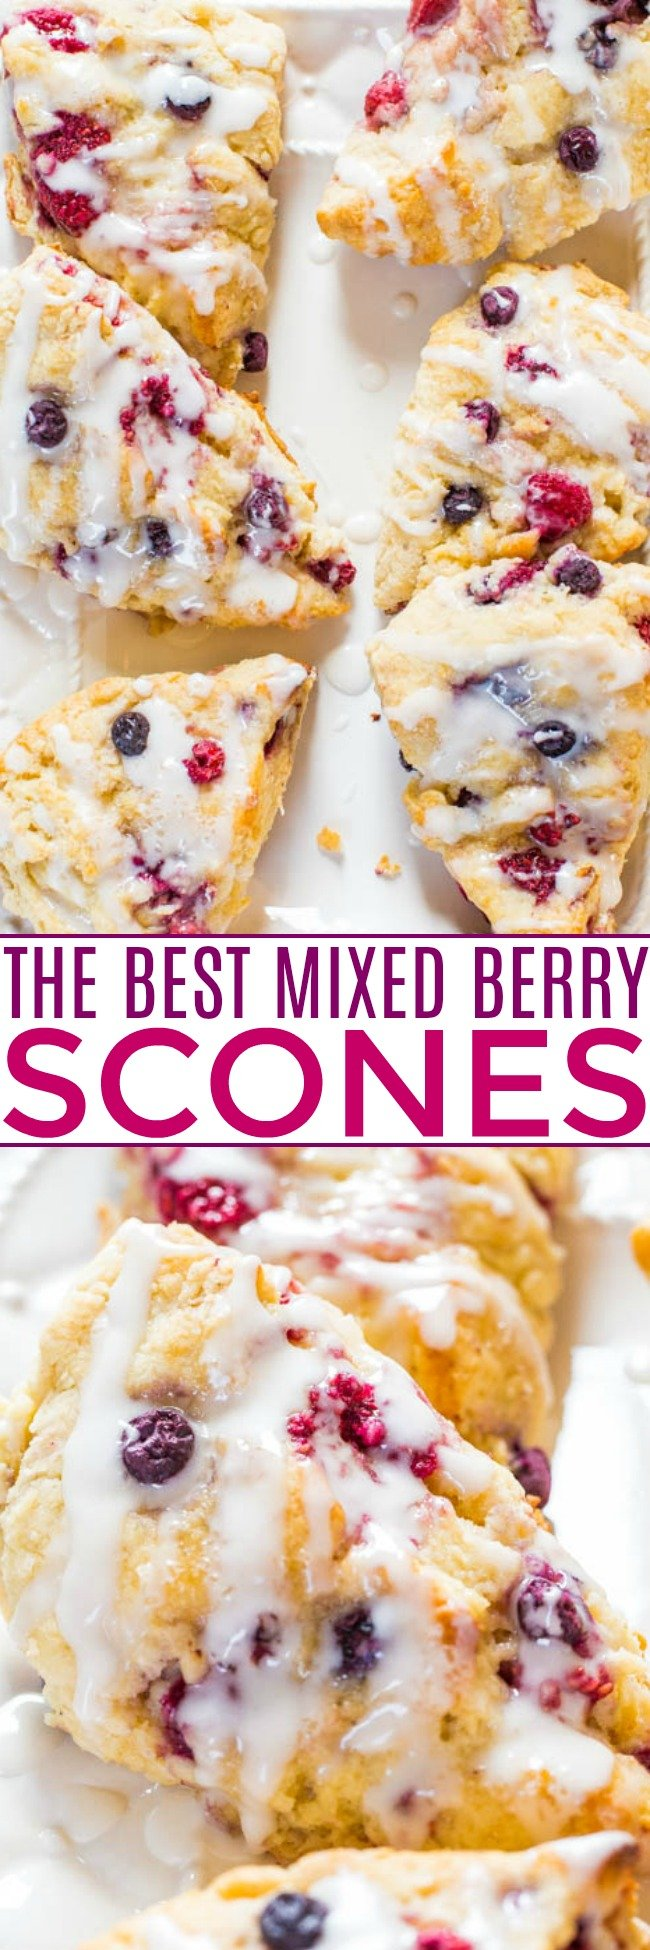 The Best Scone Recipe — These homemade scones are incredibly EASY, NOT DRY, you don't need to dirty a mixer, and are guaranteed-to-disappear weekend breakfast or brunch!! Made with common pantry ingredients and you can use frozen fruit!!